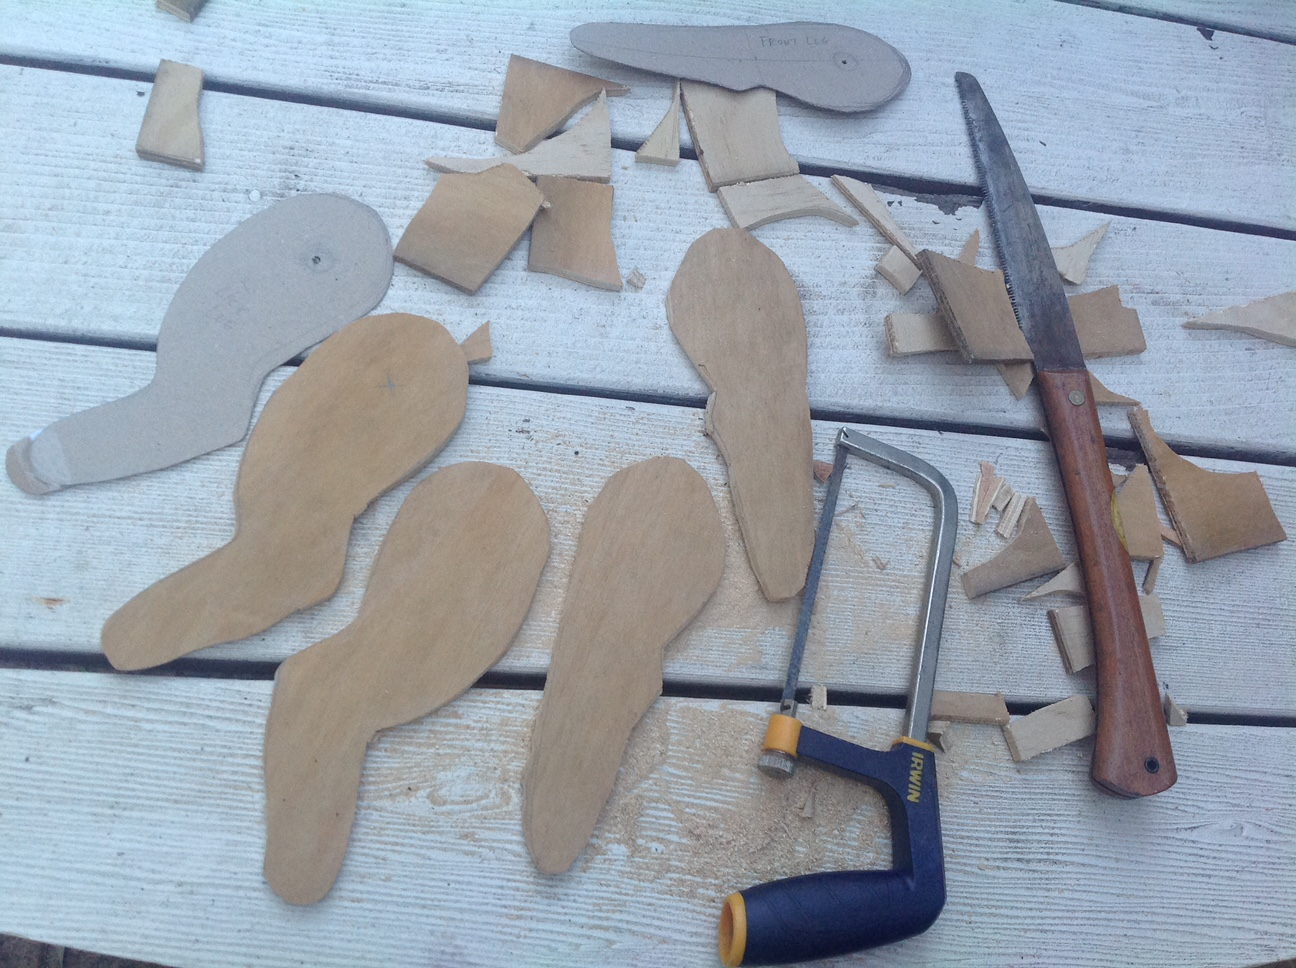 Cutting out the plywood legs